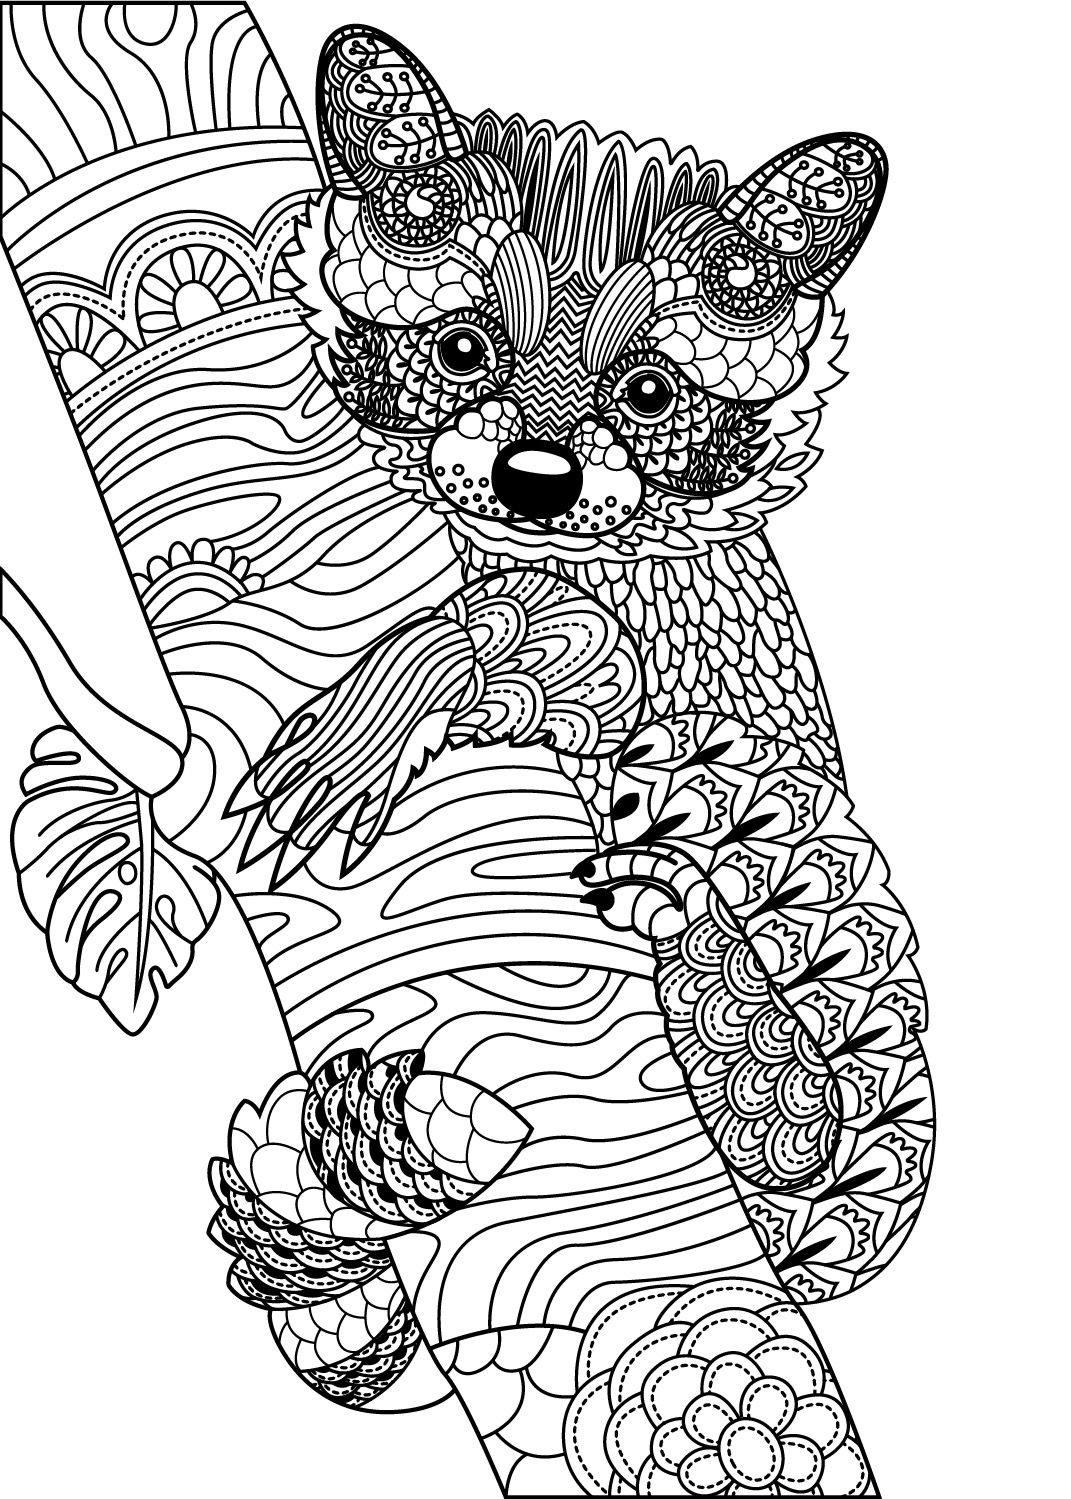 wild animal for coloring wild animal coloring pages best coloring pages for kids coloring animal for wild 1 1